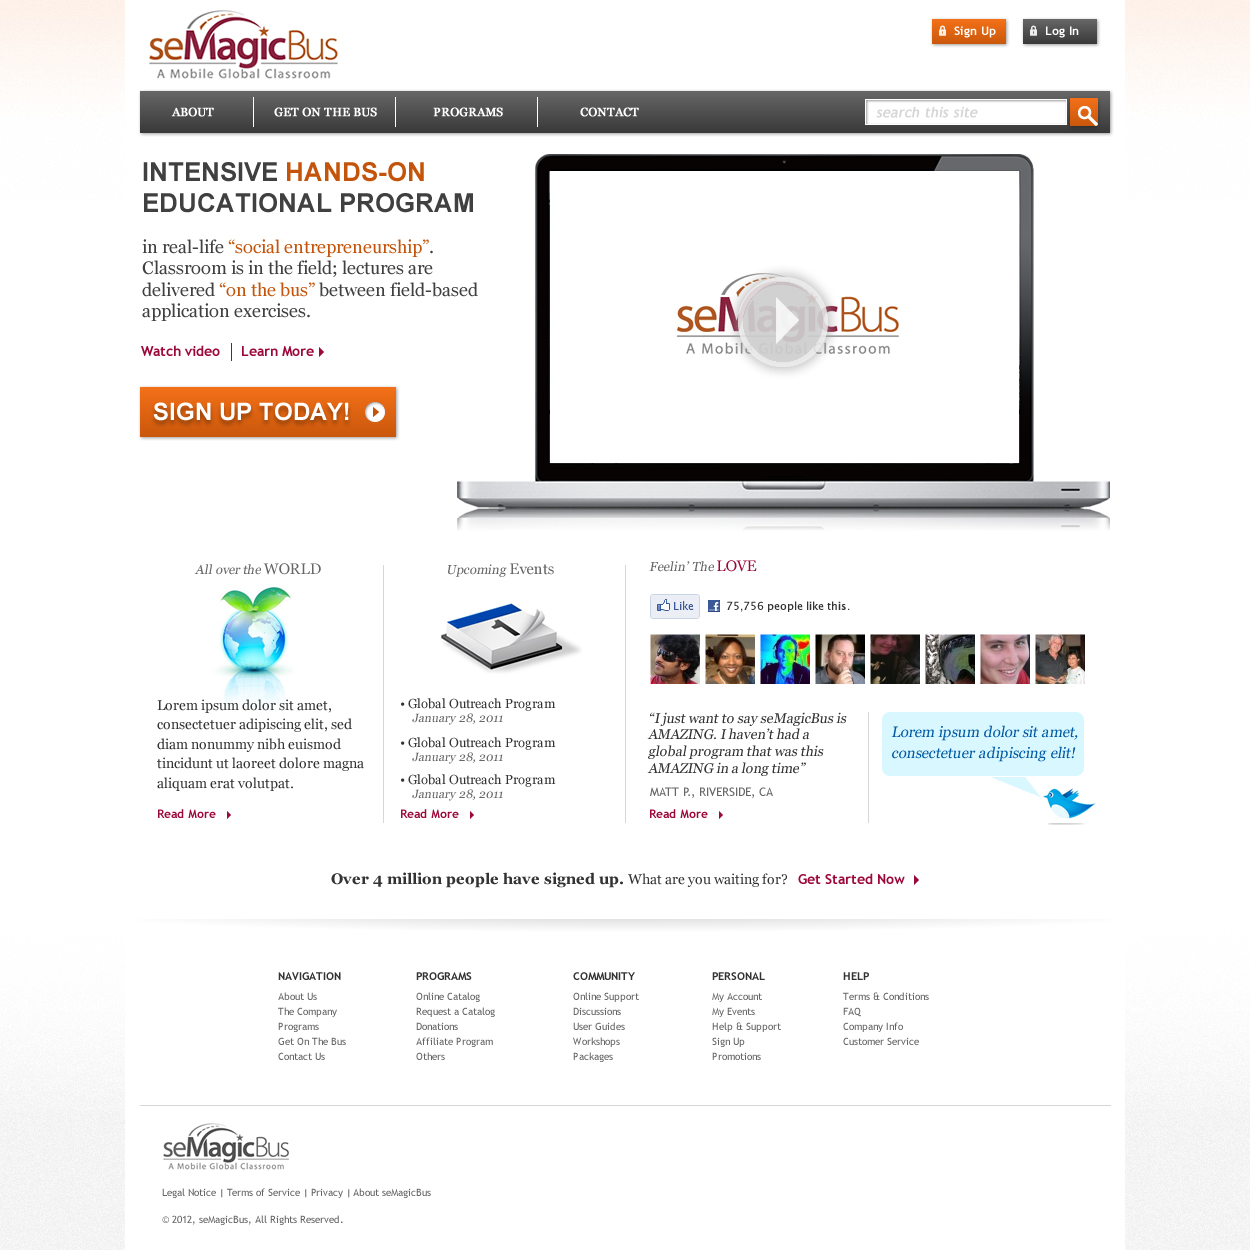 Web Page Design by johngabriel - Entry No. 18 in the Web Page Design Contest seMagicBus Website.